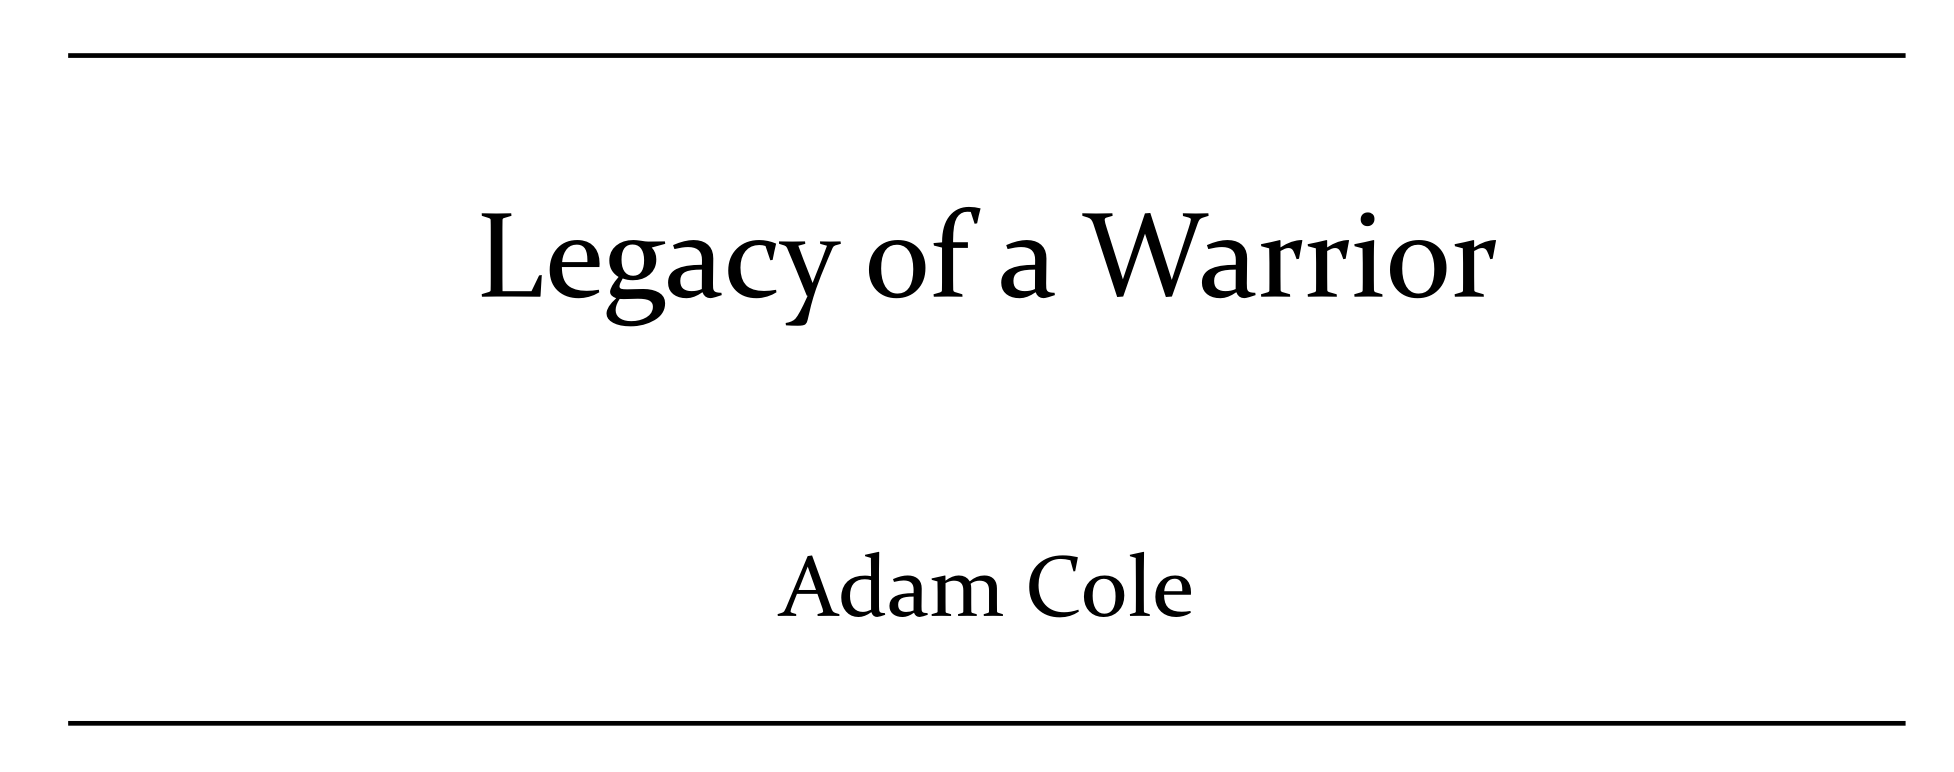 Legacy of a Warrior